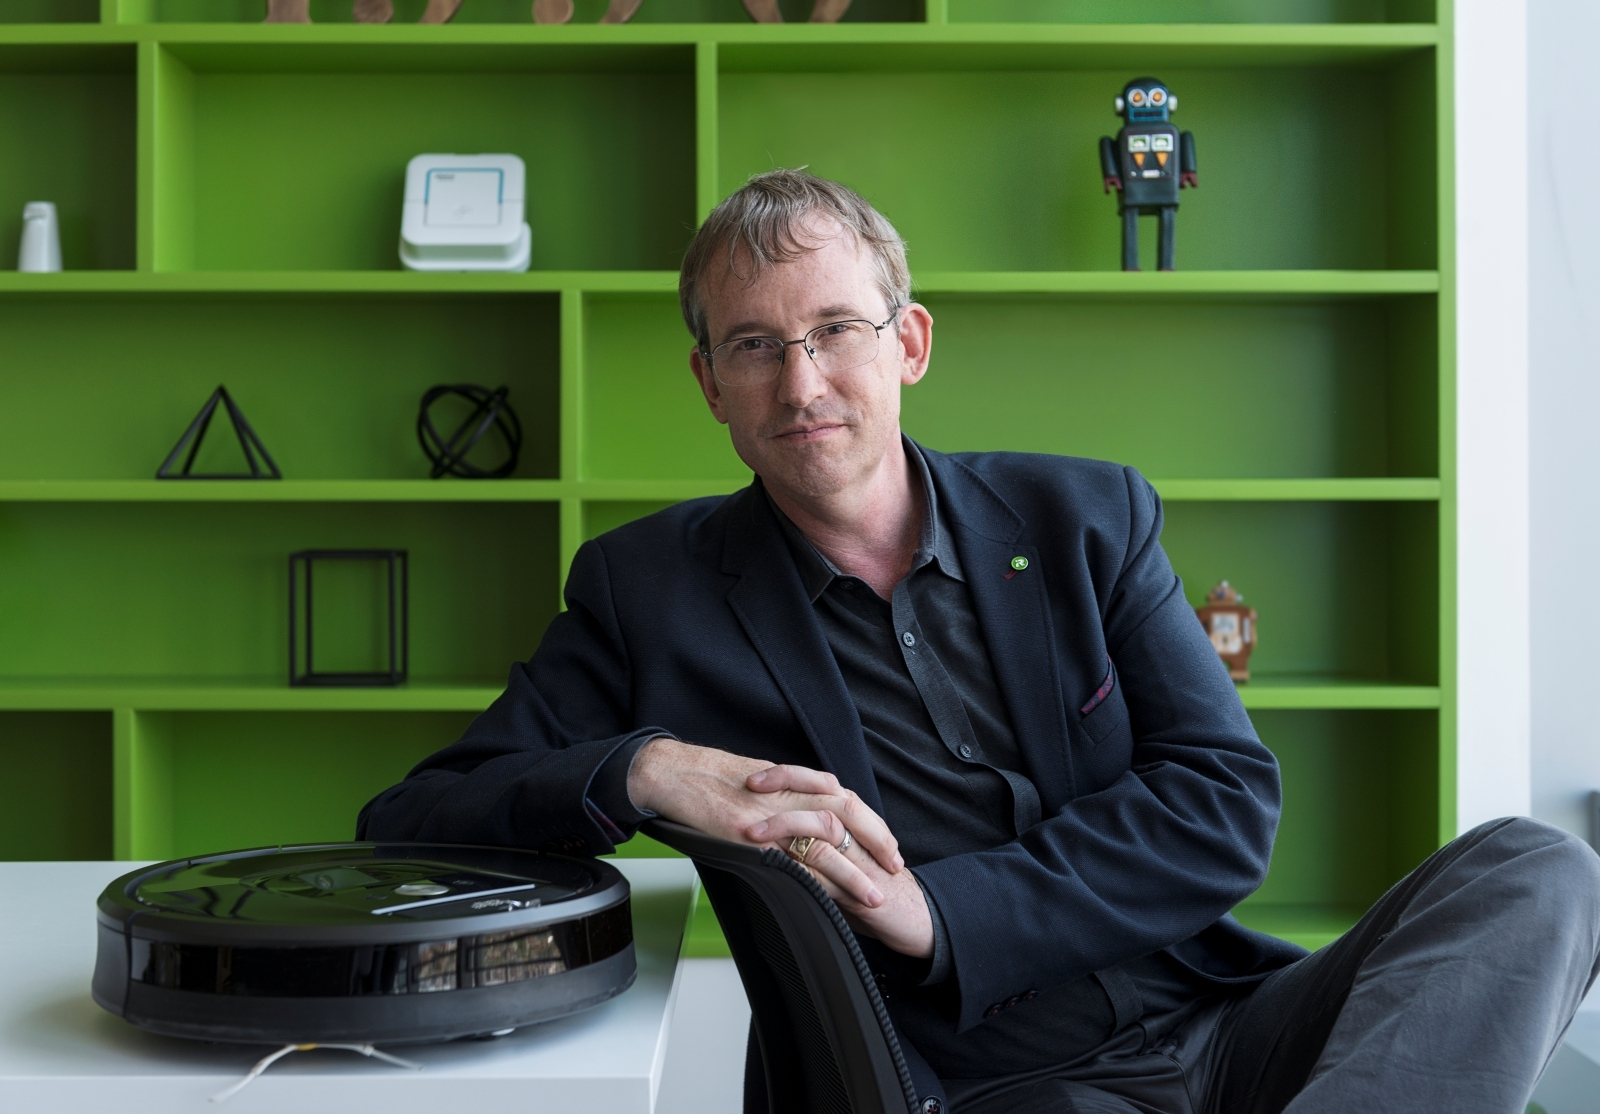 Your Roomba is spying on you and that fridge sure looks suspicious